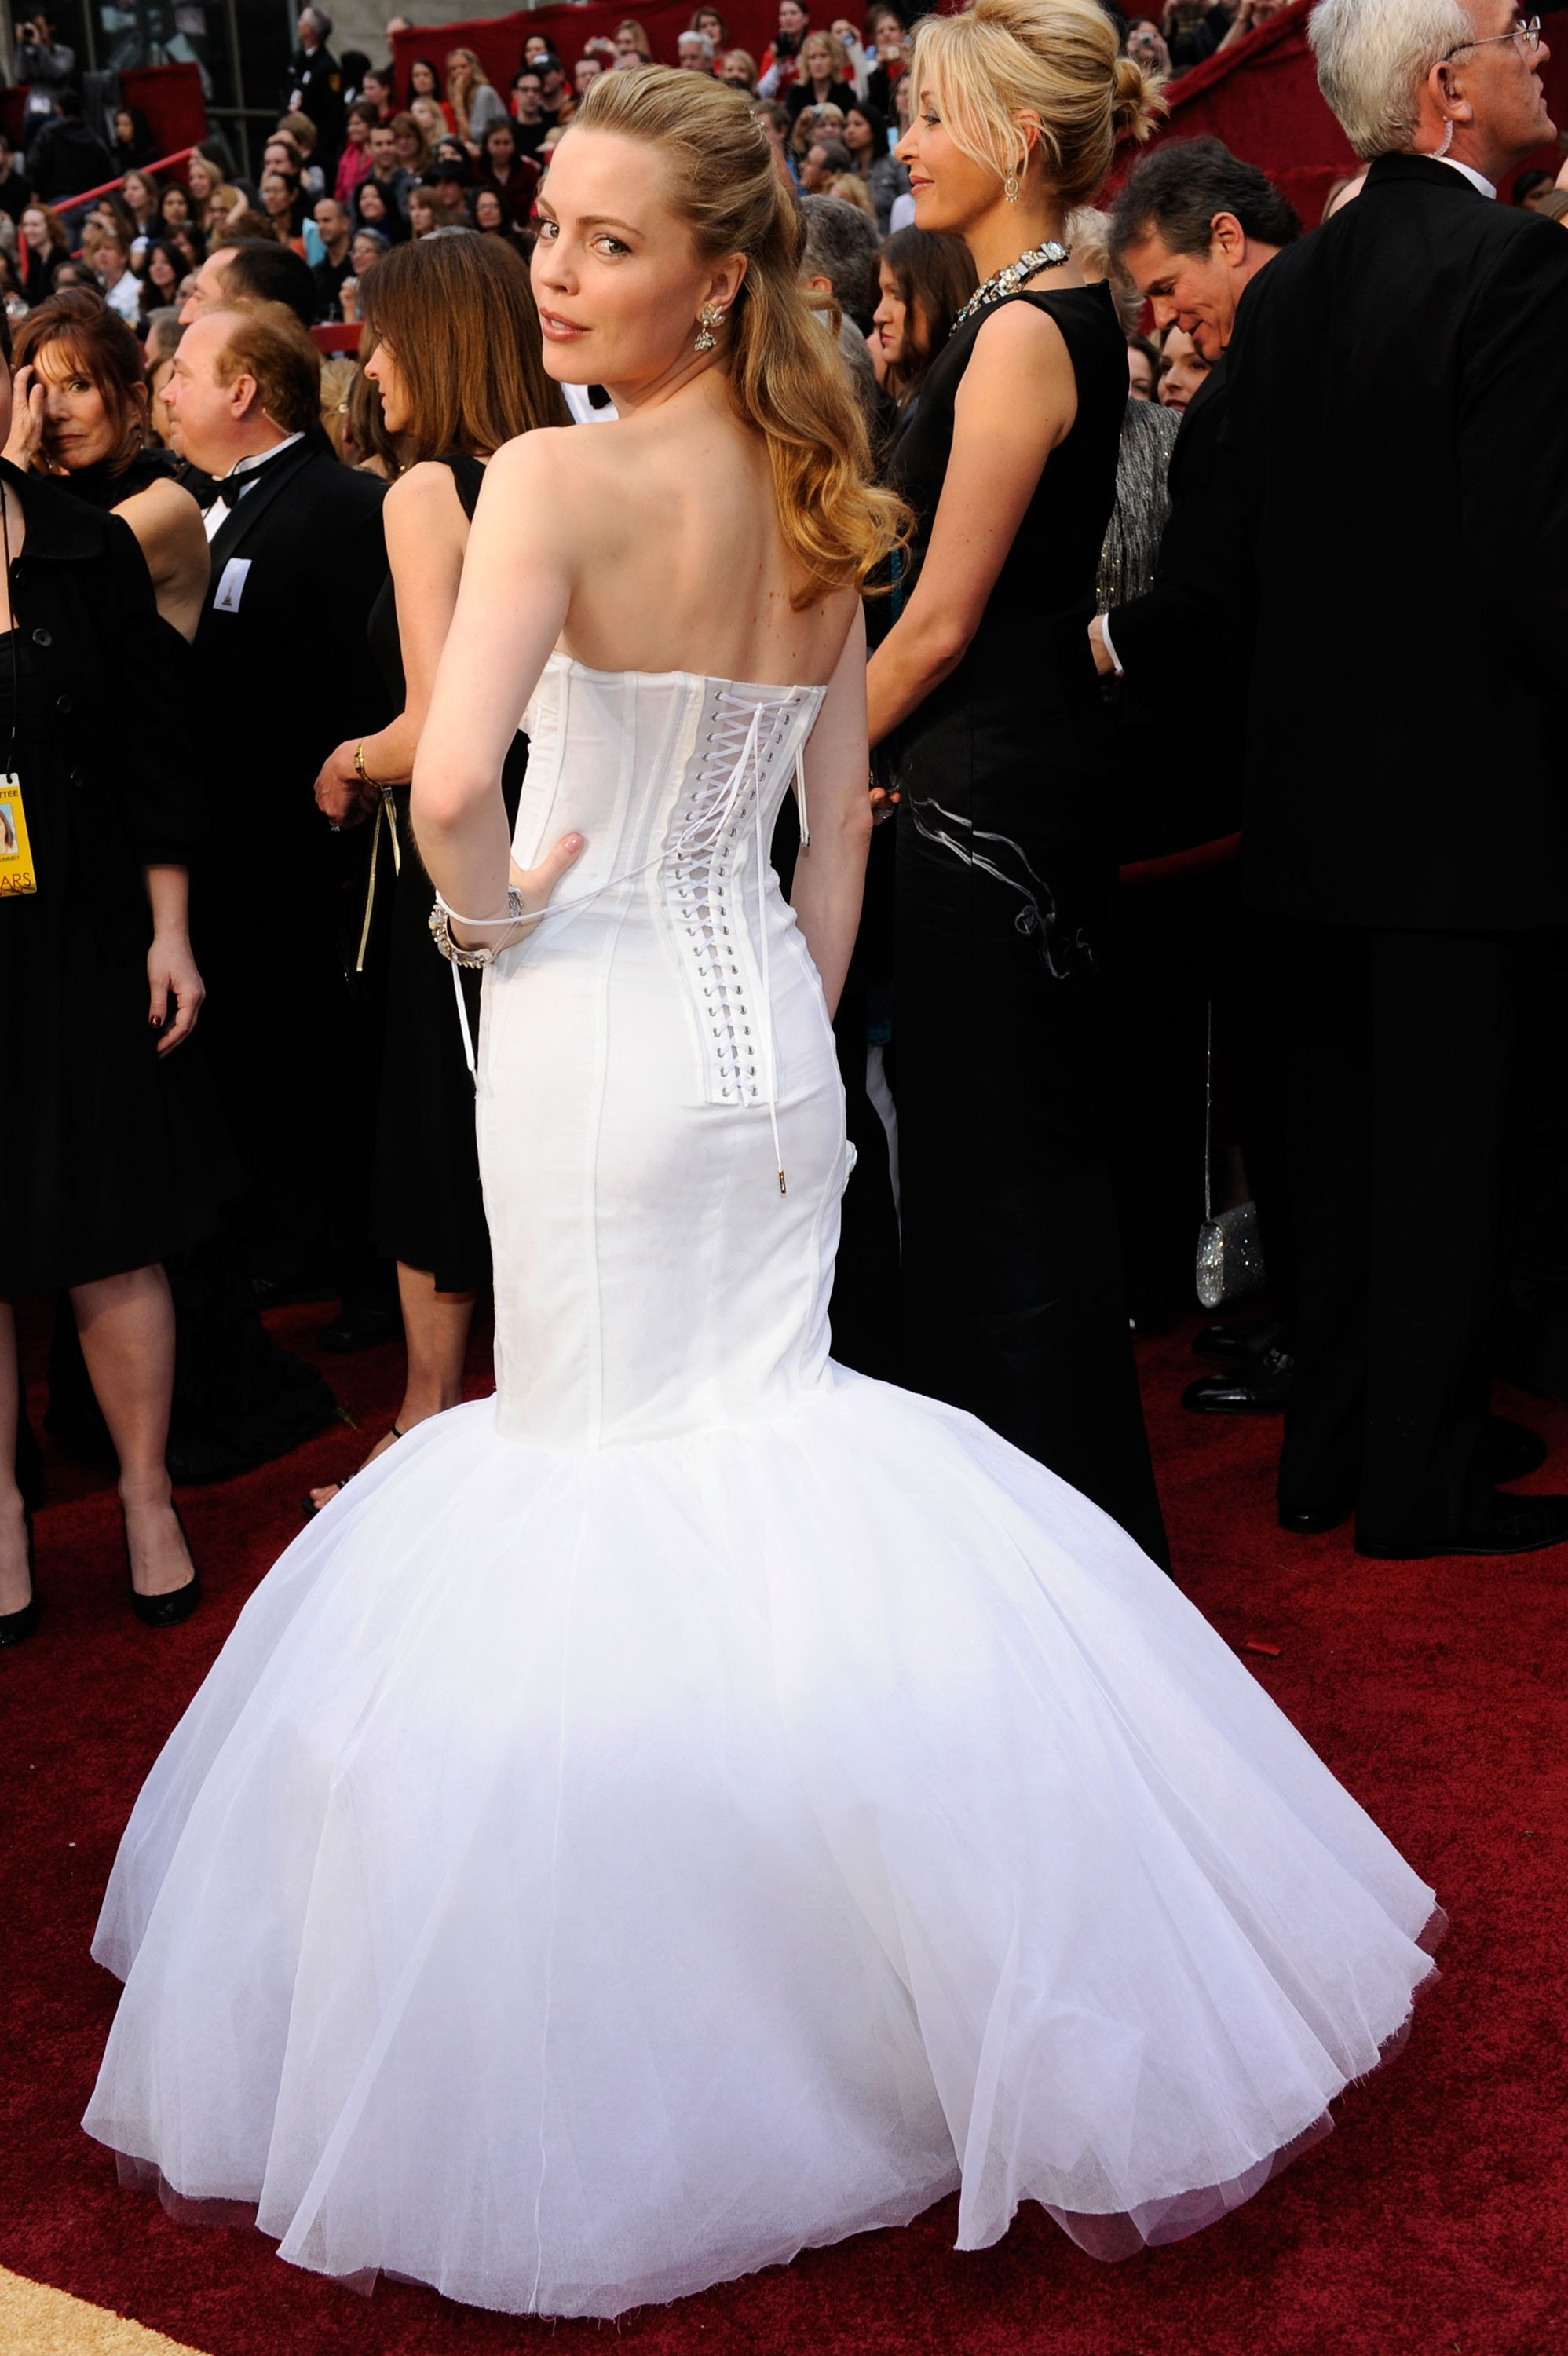 49806_Celebutopia-Melissa_George_arrives_at_the_81st_Annual_Academy_Awards-04_123_375lo.jpg